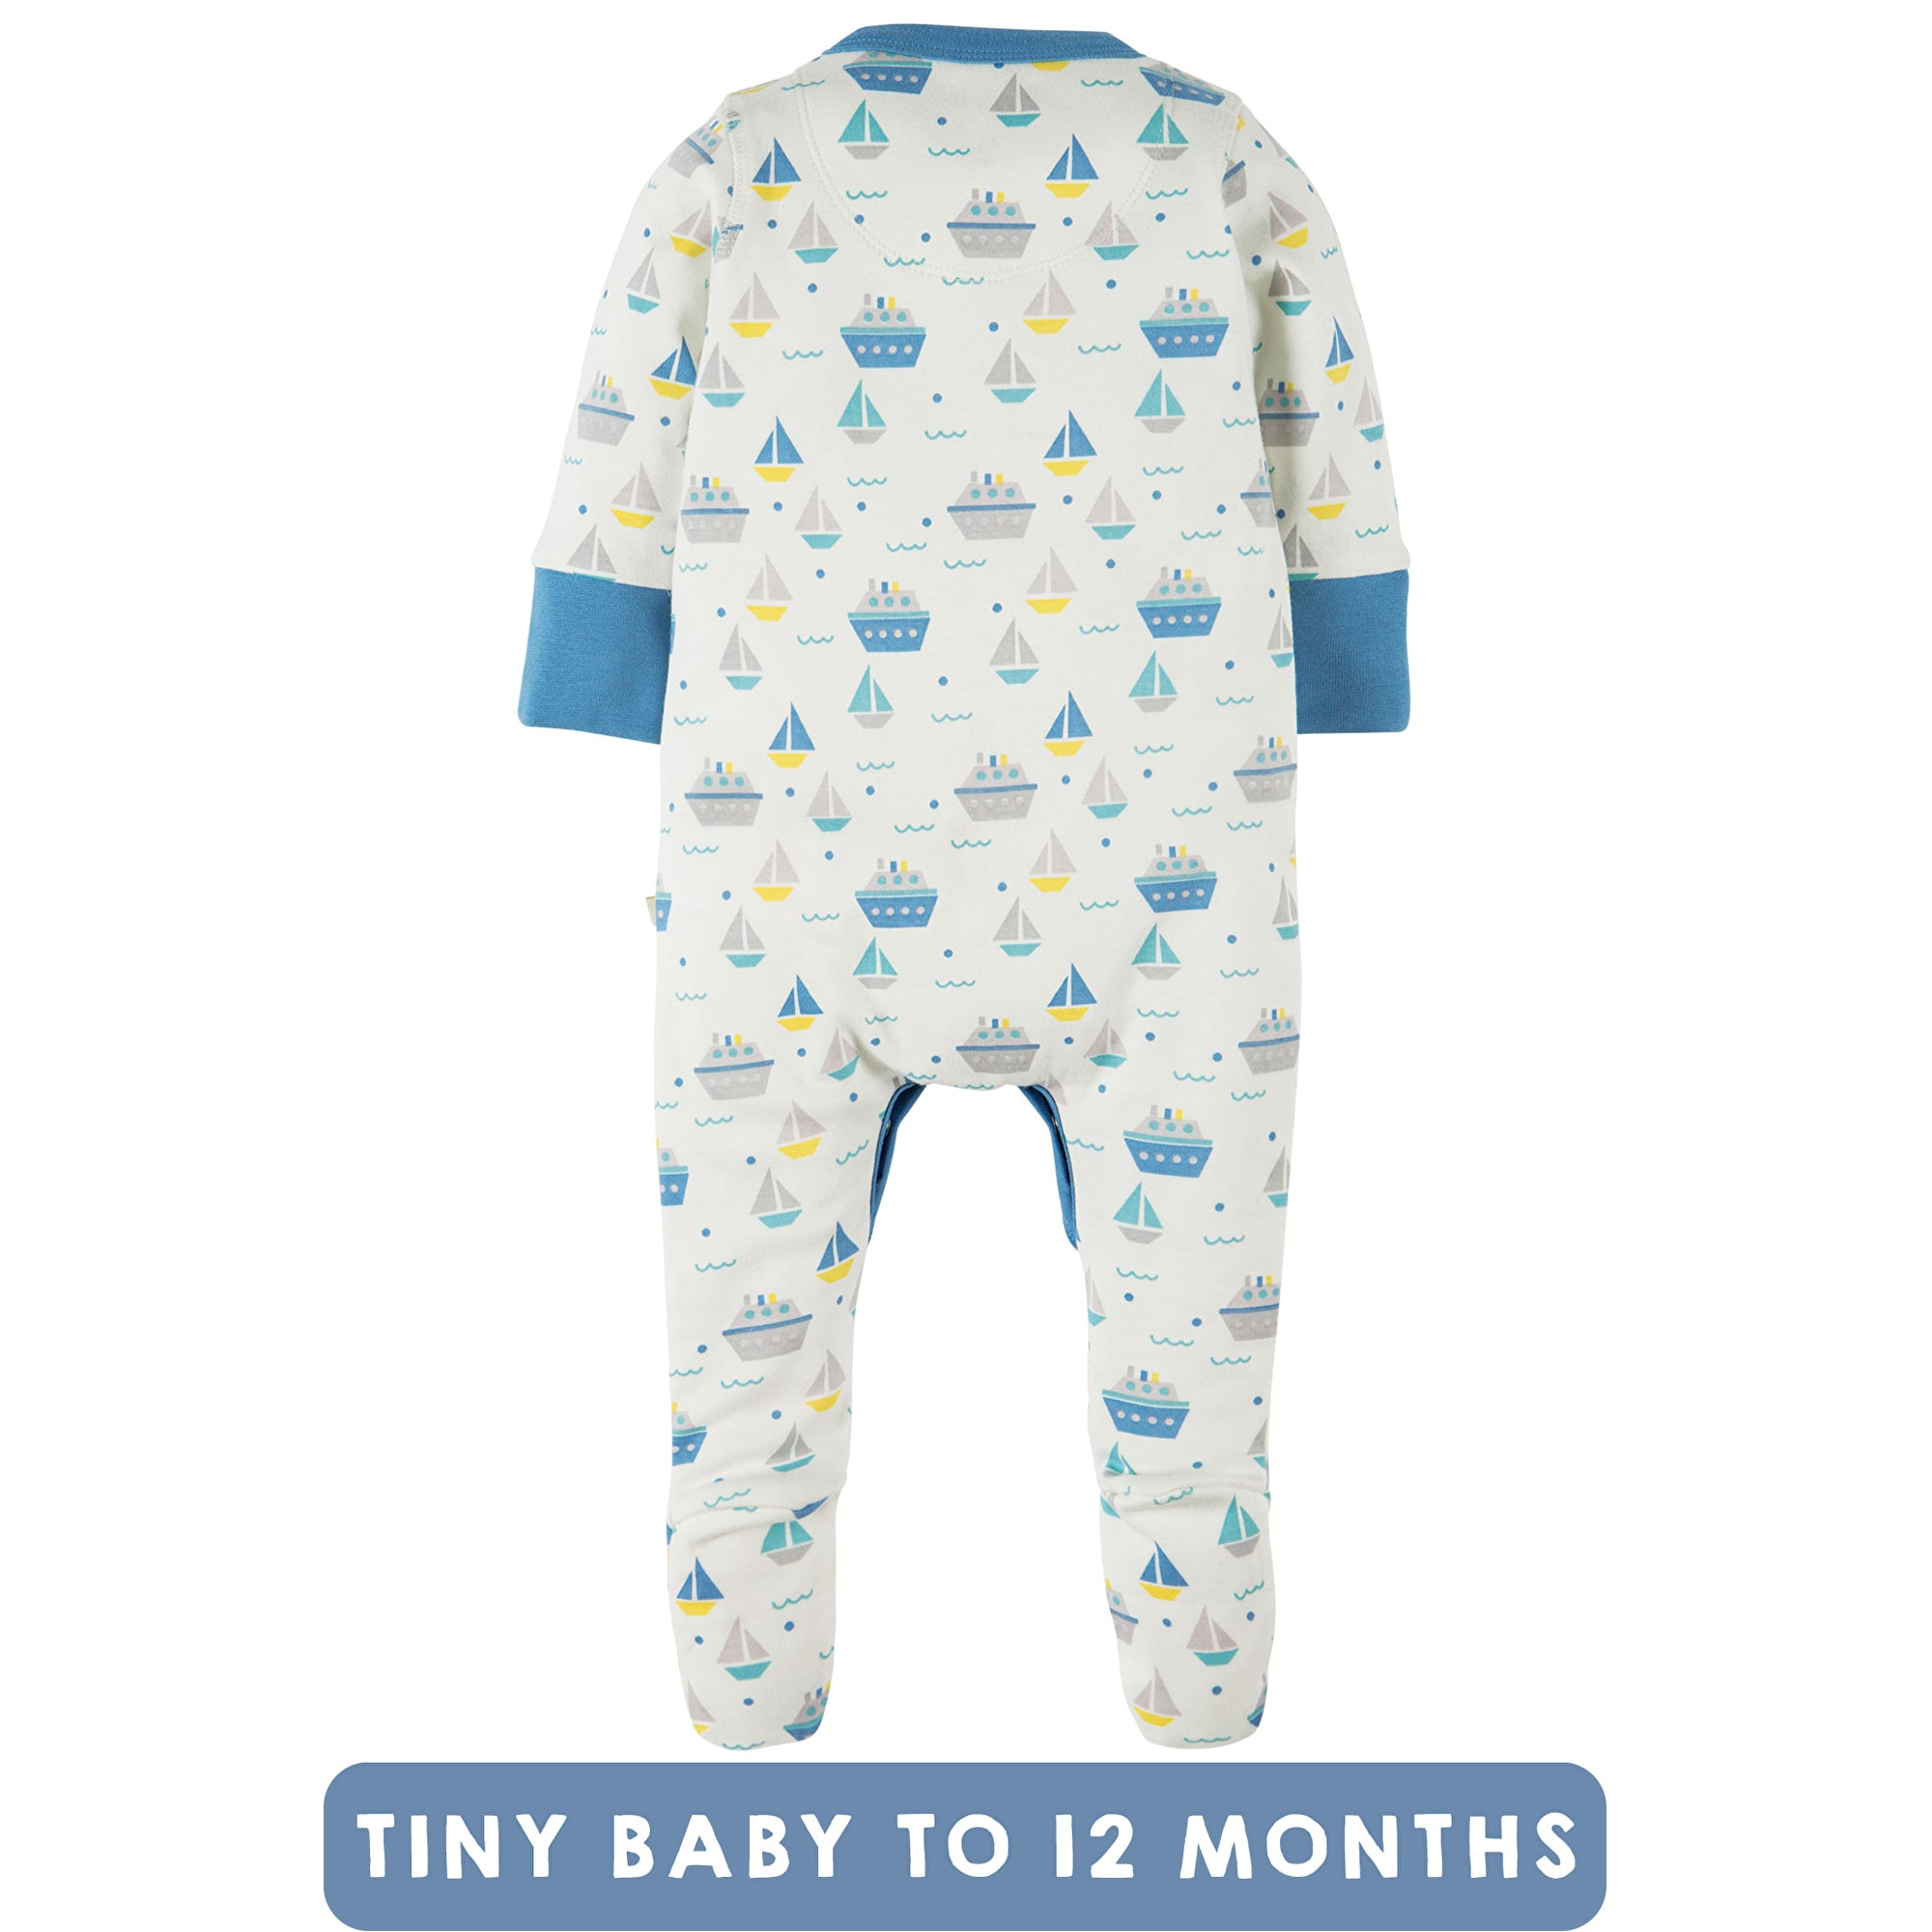 e07dee636 Darling Babygrow - Summer Seas